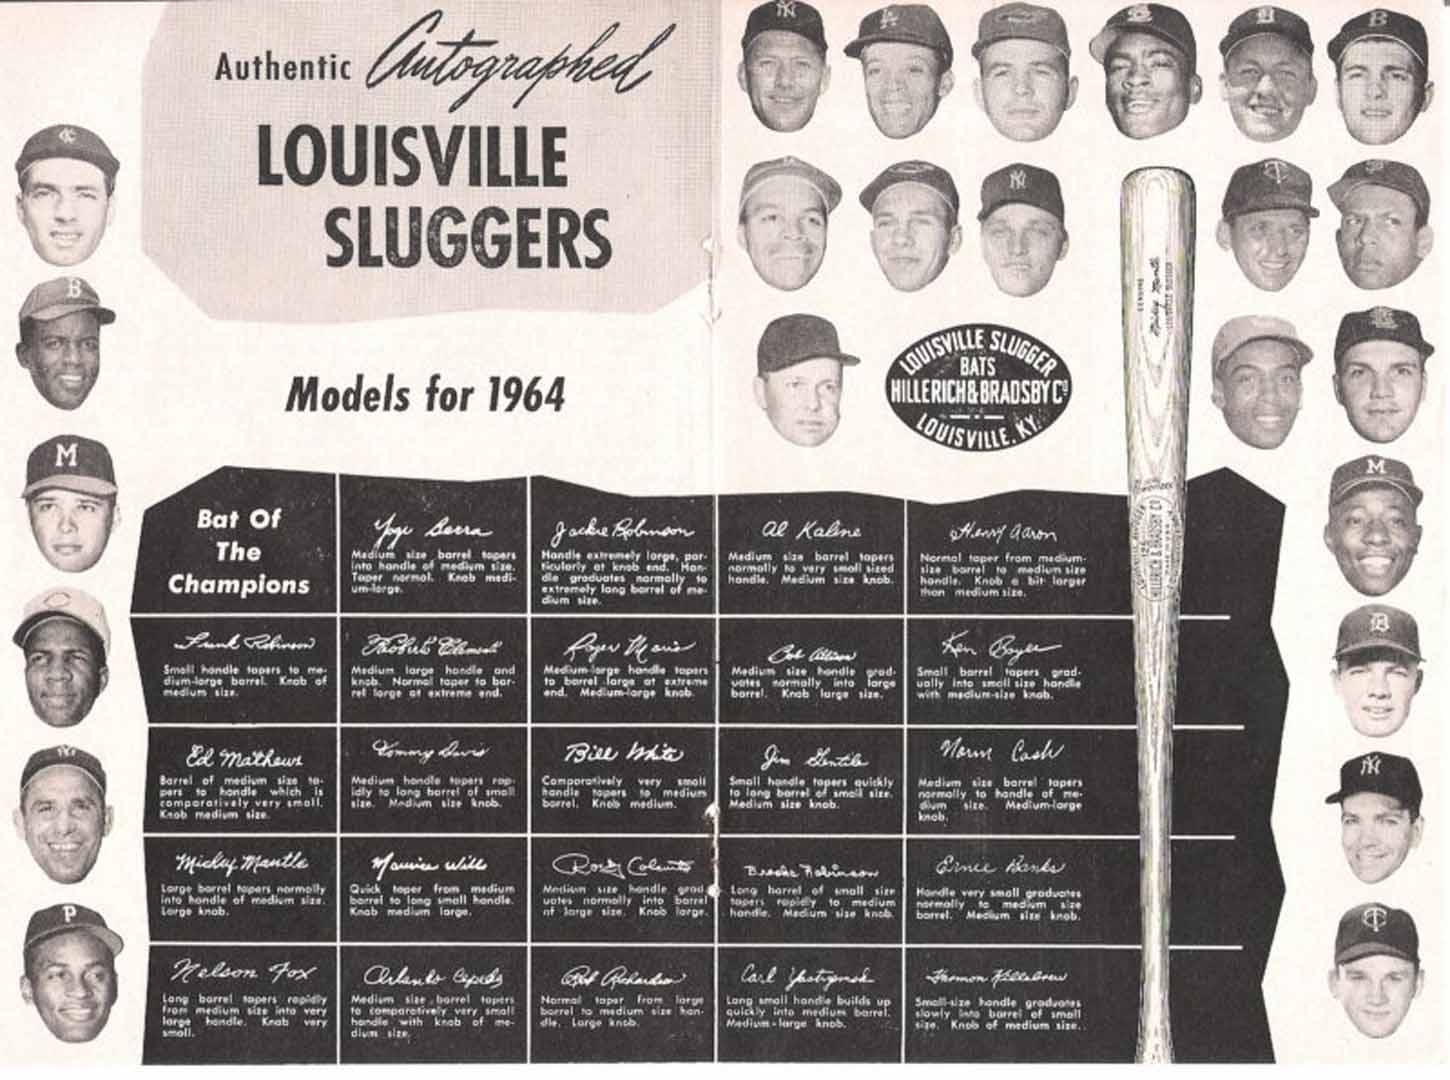 1964 H and B famous sluggers